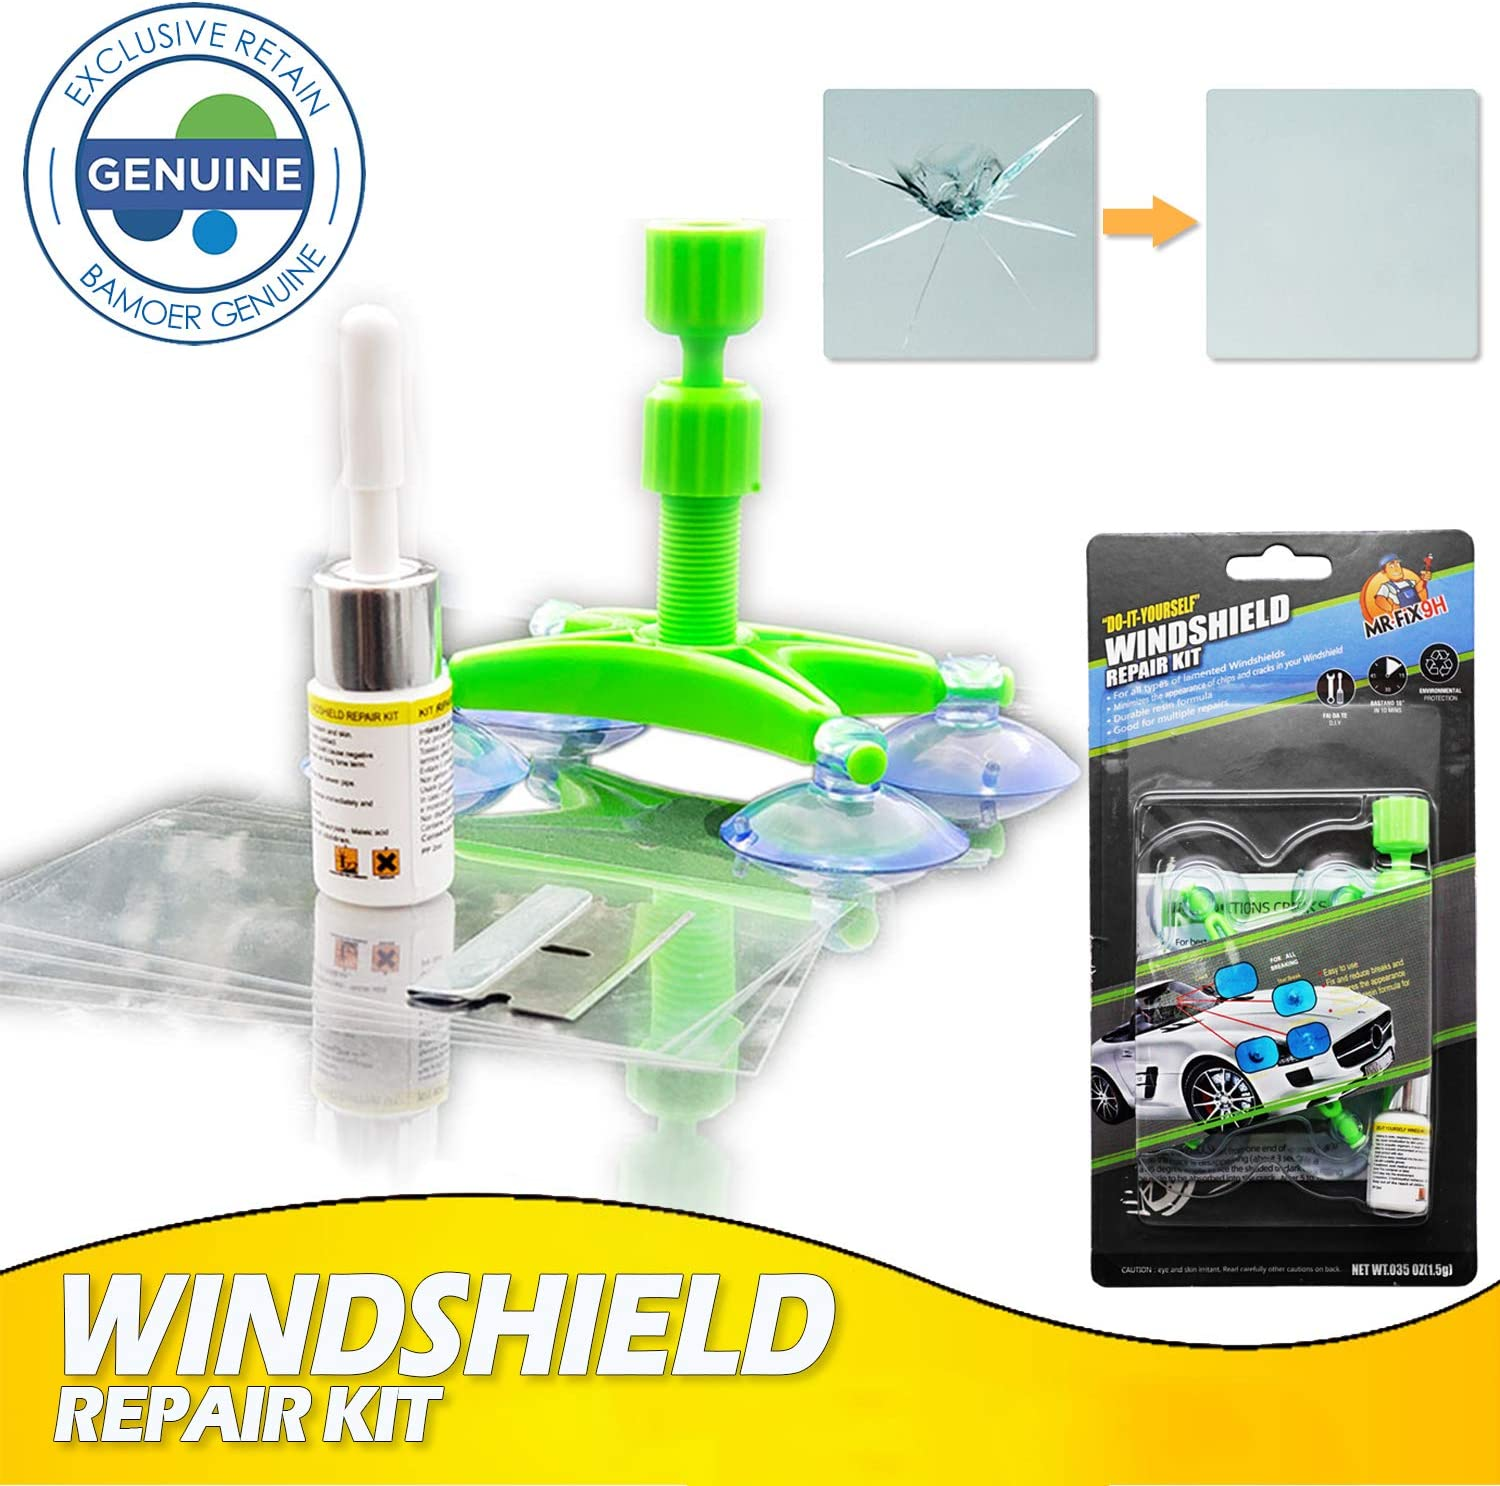 Bamoer Windshield Repair Kit,Newest Generation Car Windshield Repair Tools with Windshield Repair Resin for Auto Glass Windshield Crack Chip Scratch, Chips, Cracks, Bulll's-Eyes and Stars (Green)